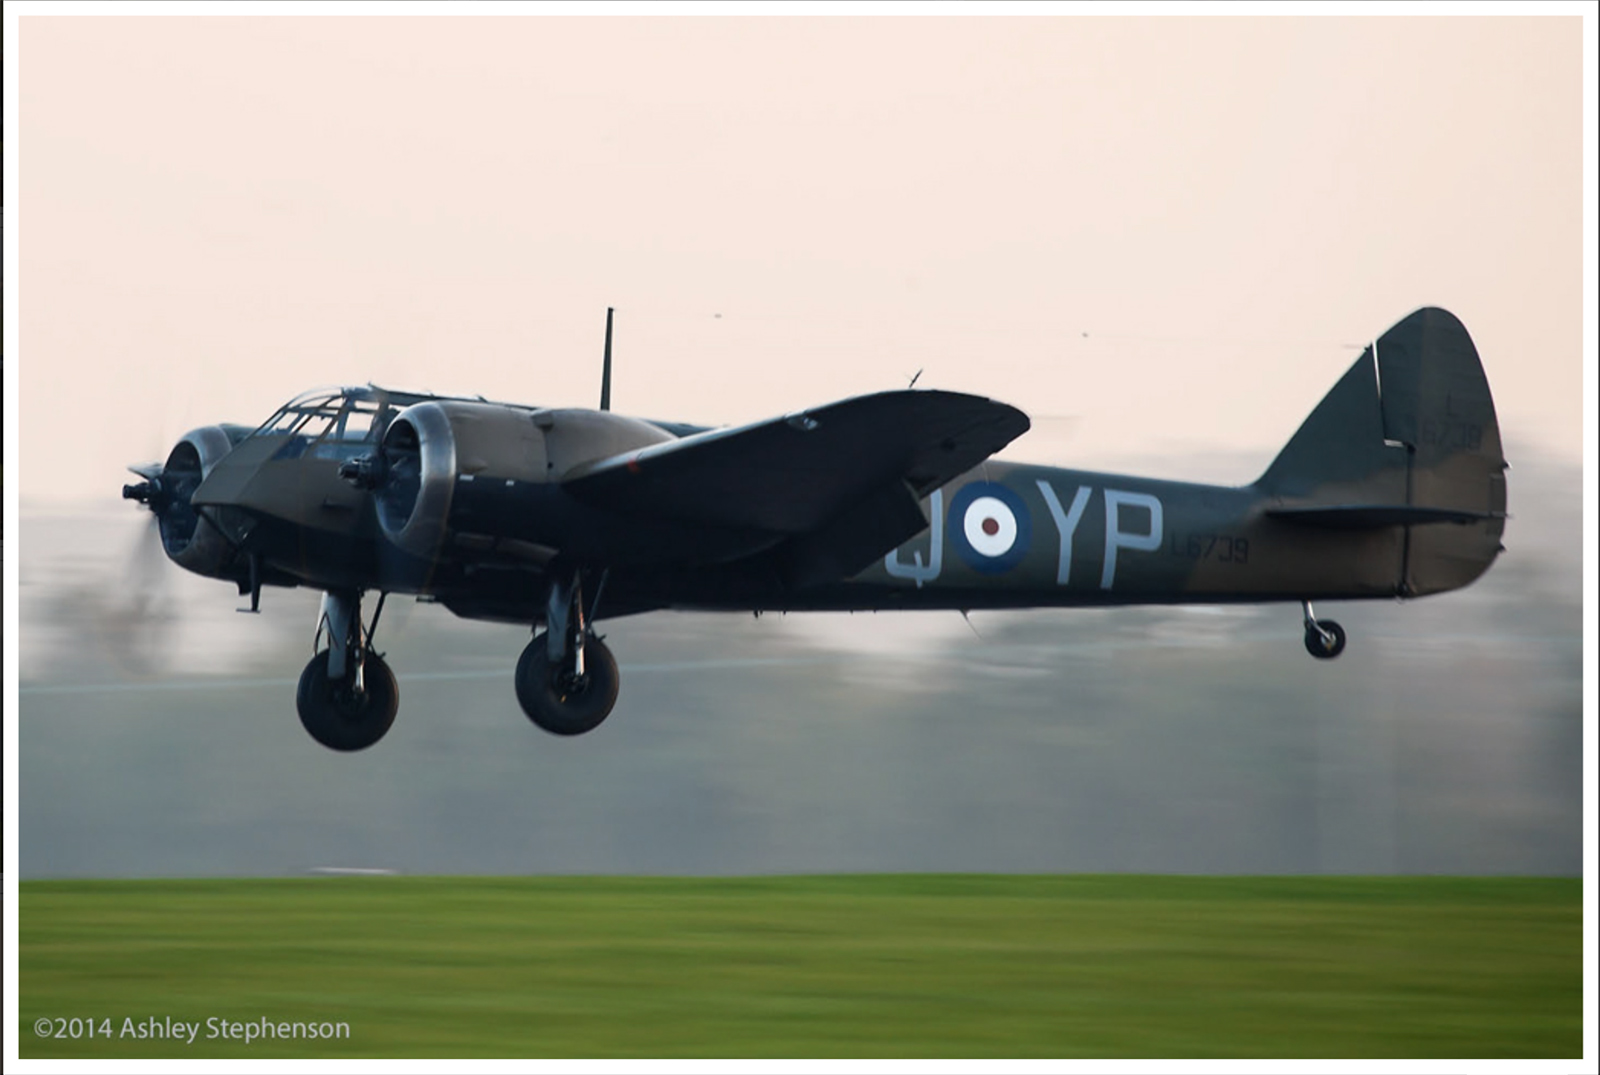 John Romain at the controls of Blenheim Mk.I L6739 as she takes off on her first post-restoration flight on November 20th. (photo by Ashley Stephenson via Global Aviation Resource)